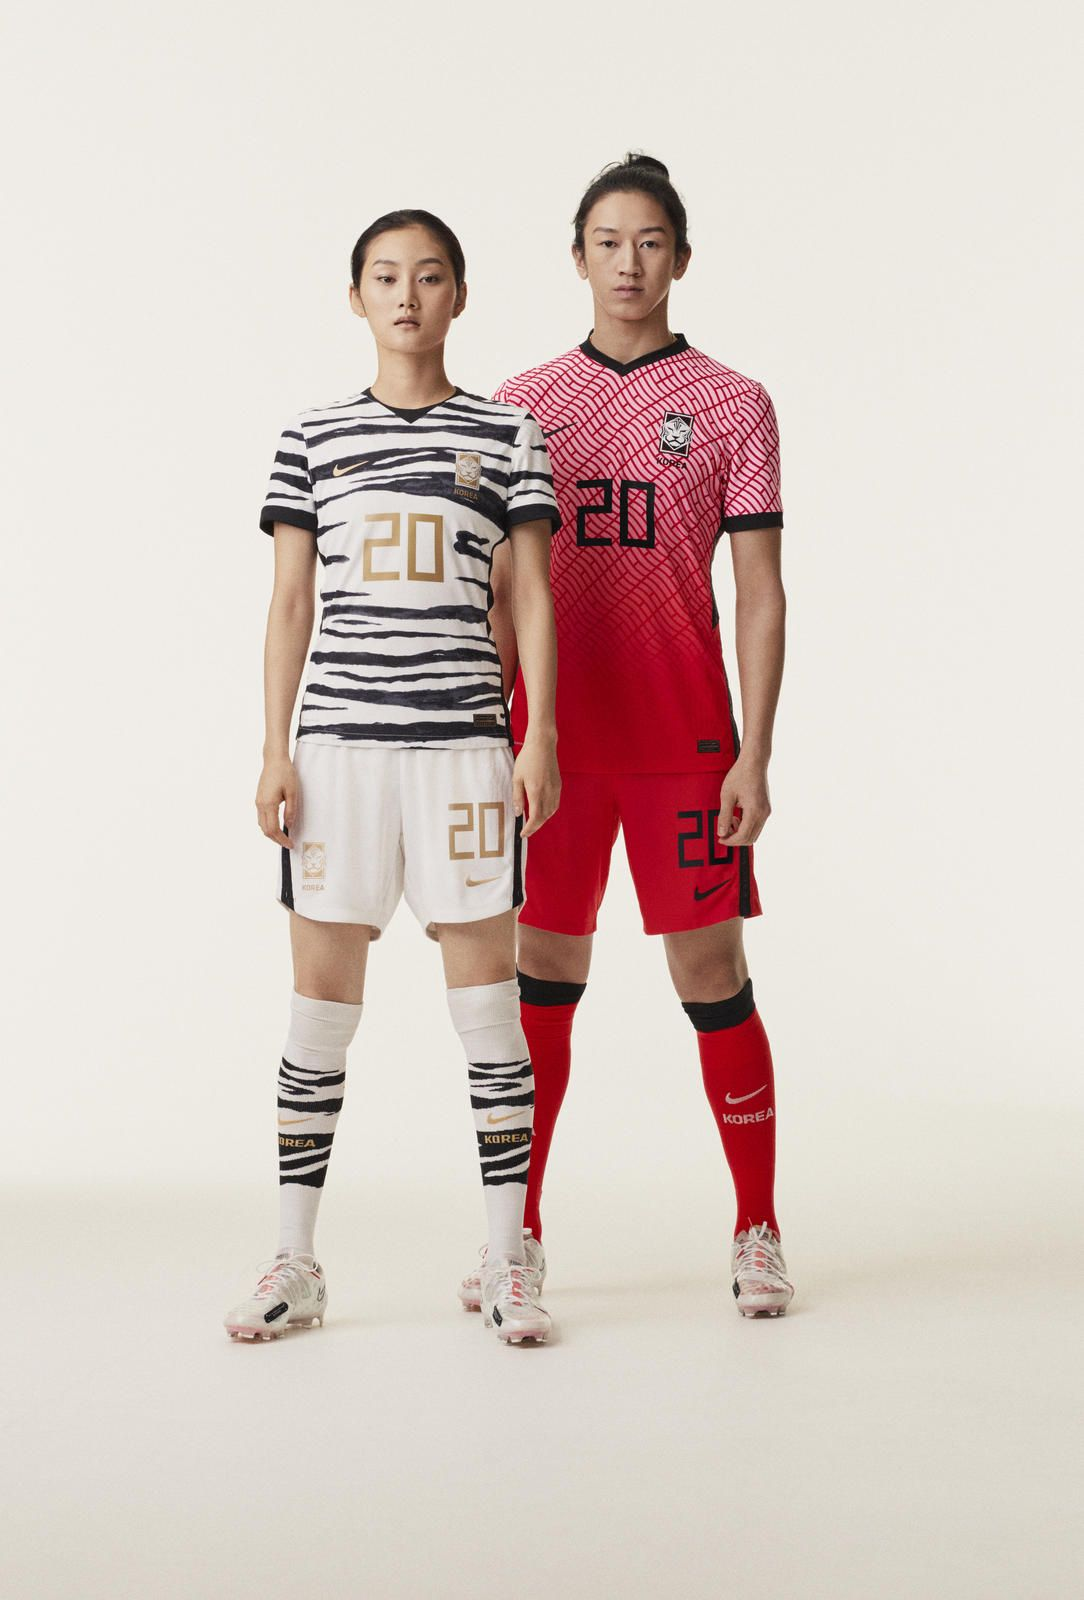 Pin By Michael Diokno On Soccer Kit Ideas Football Outfits Nike Football Tokyo 2020 Olympics